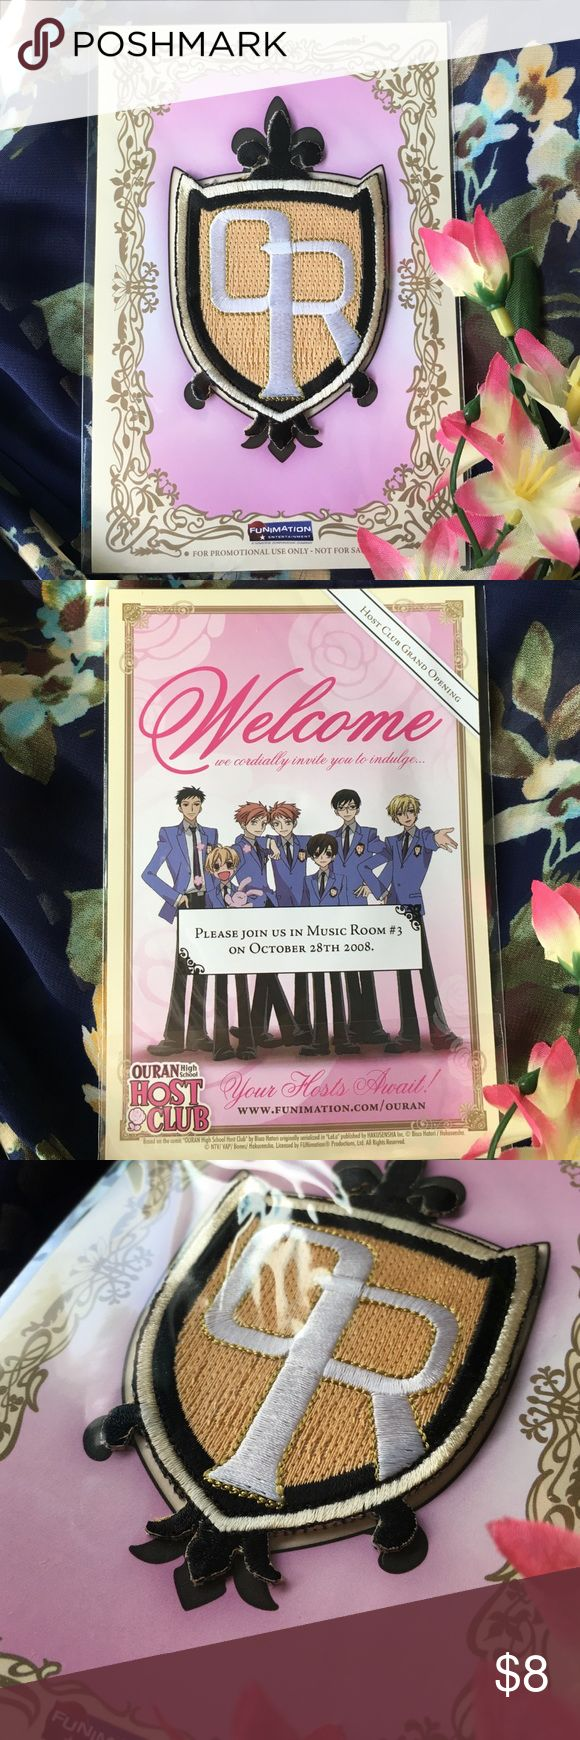 "Ouran High School Host Club Accessory Patch A sealed patch from your favorite host club! About 3"" tall, 2"" wide. A great addition to any collection of patches. funimation  Accessories"